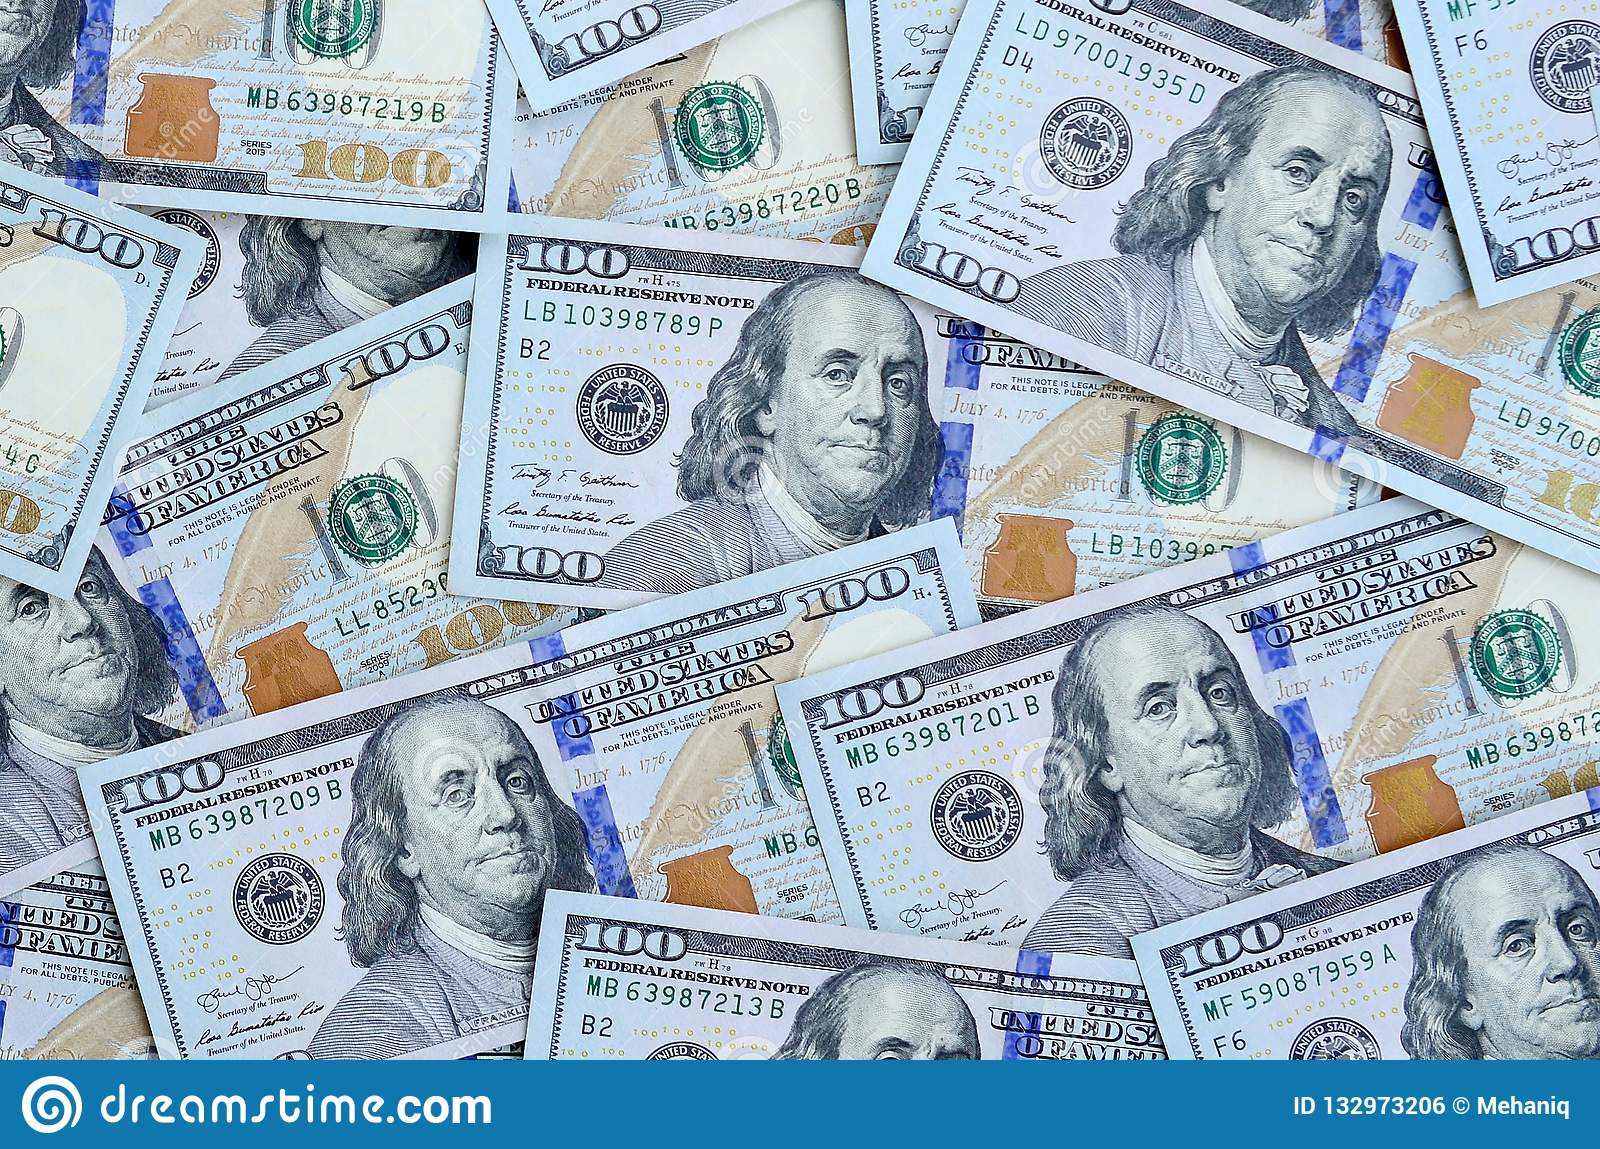 A Large Number Of US Dollar Bills Of A New Design With A Blue Stripe